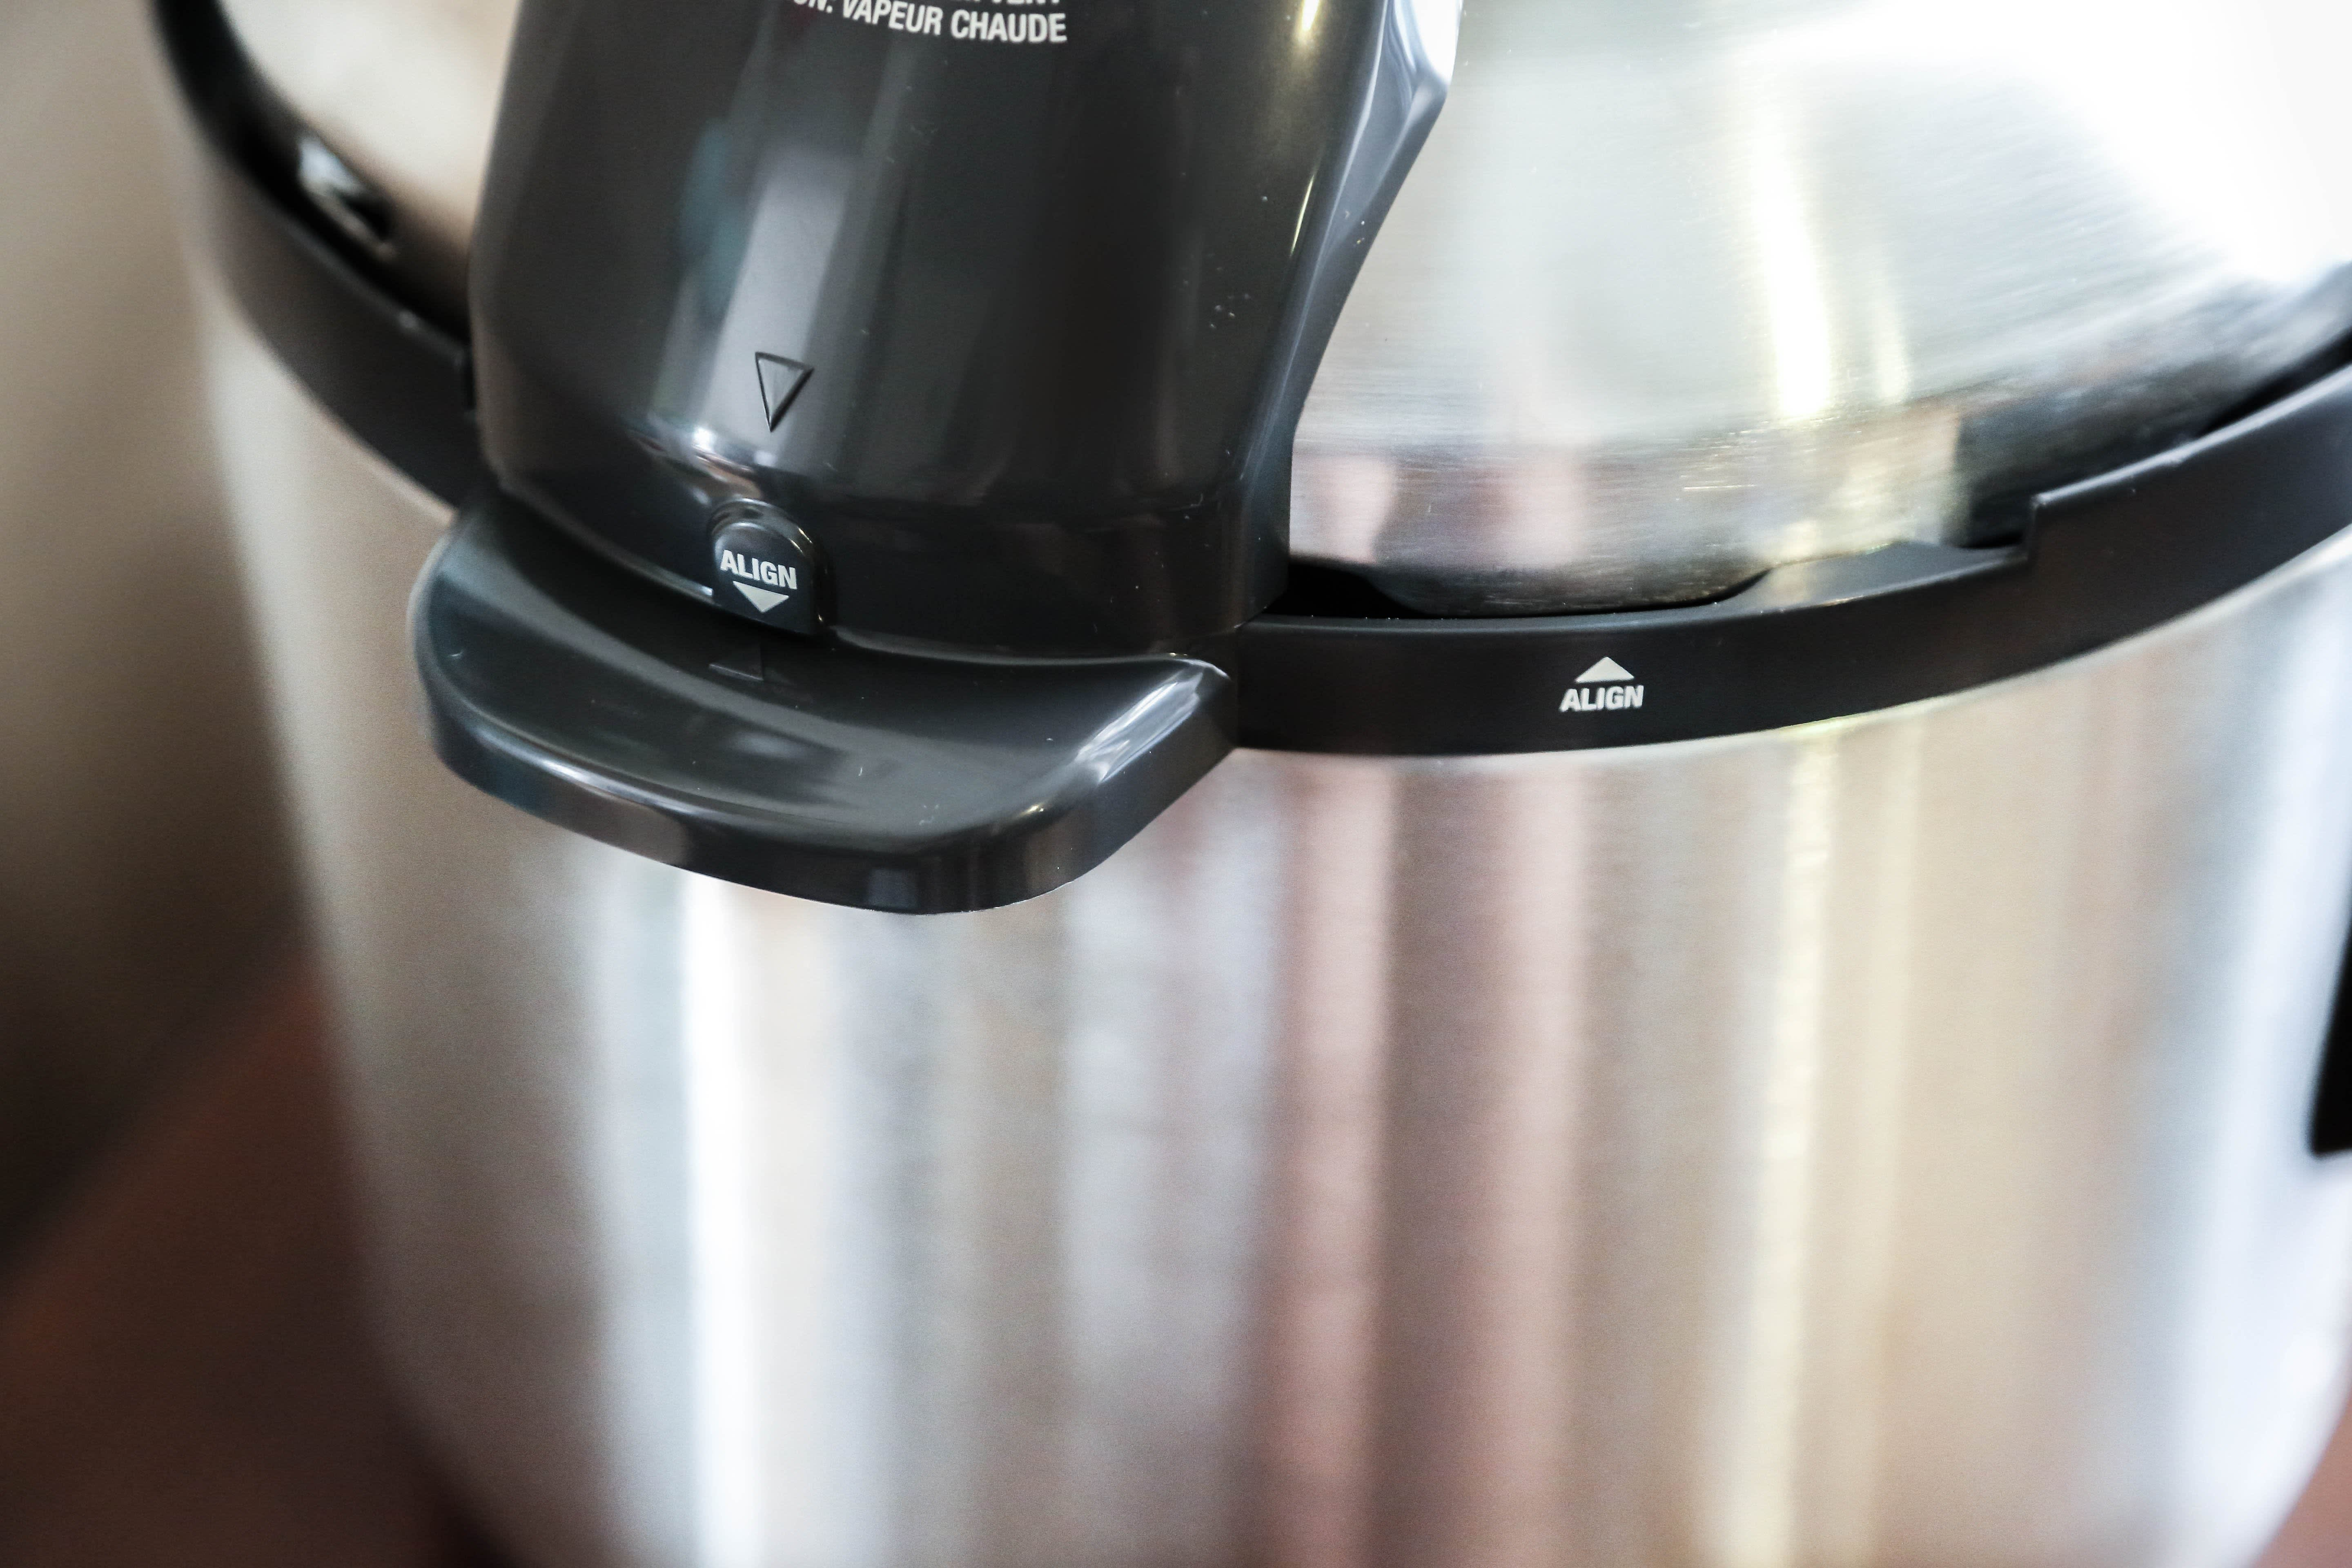 Breville's Fast Slow Cooker Is a Great Pressure Cooker for